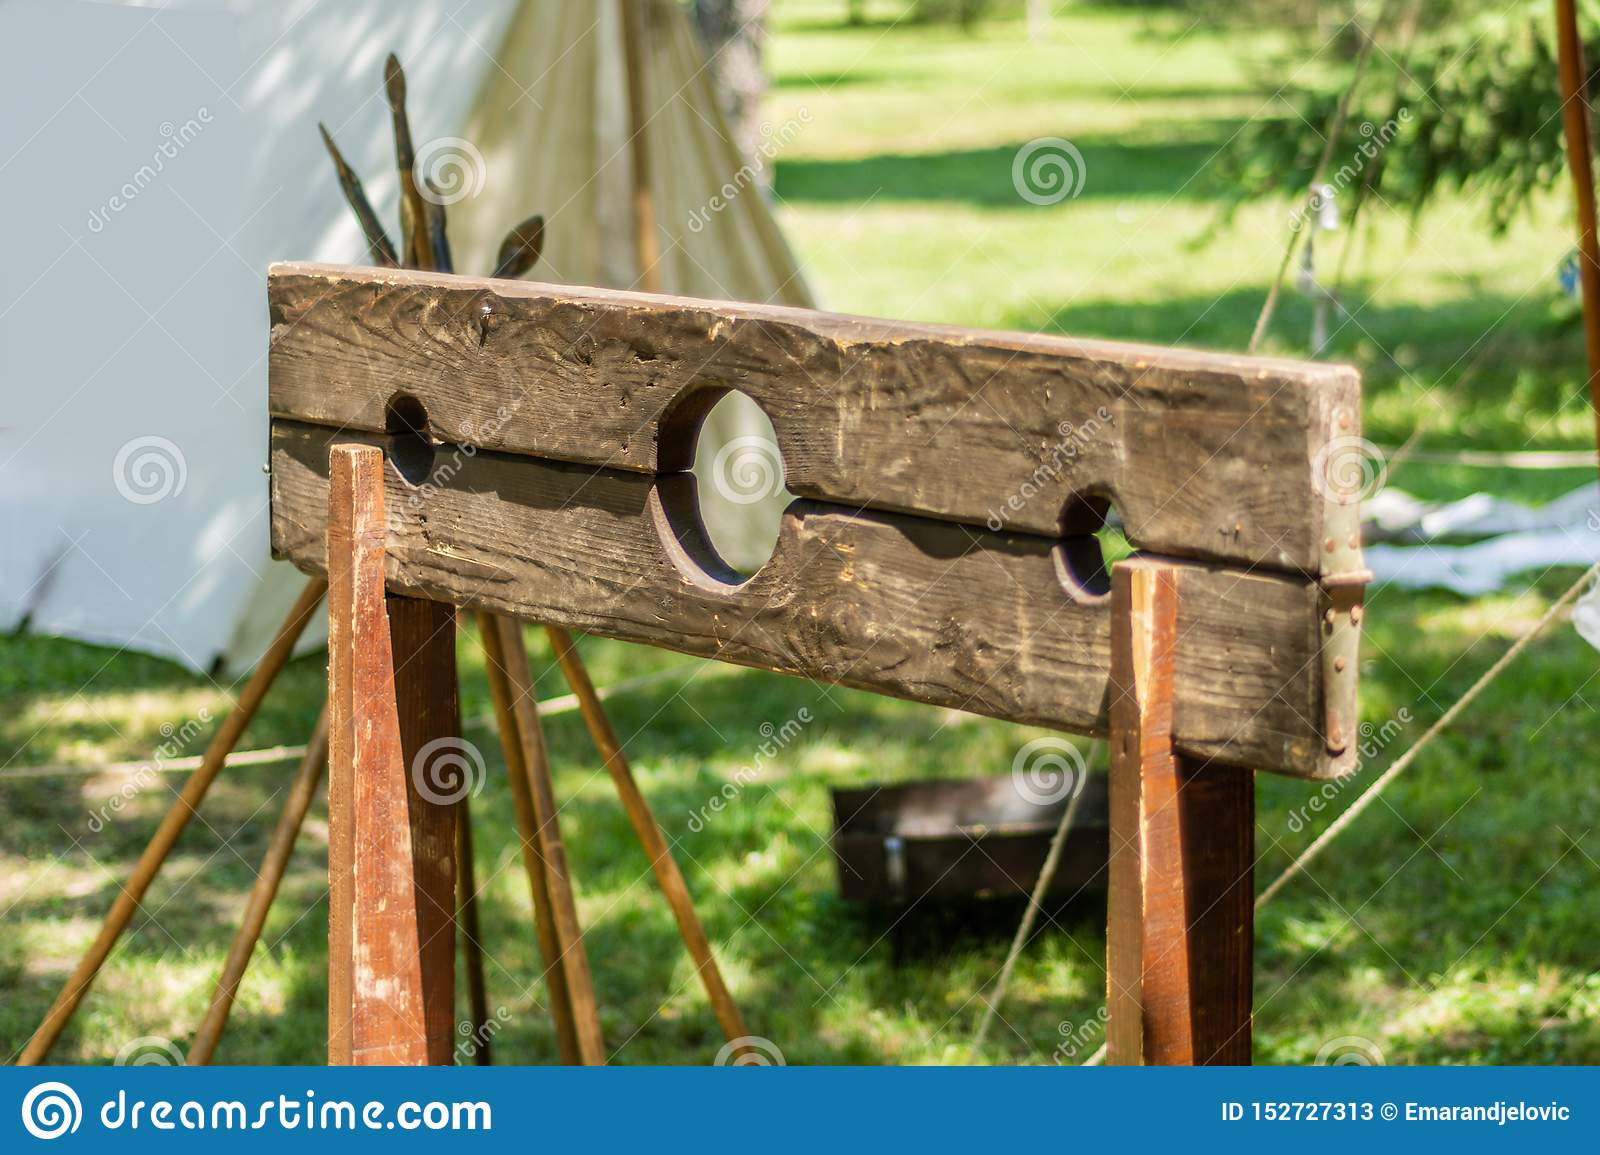 The pillory, wooden frame usually mounted on a post where the criminal would place their head and hands through the holes